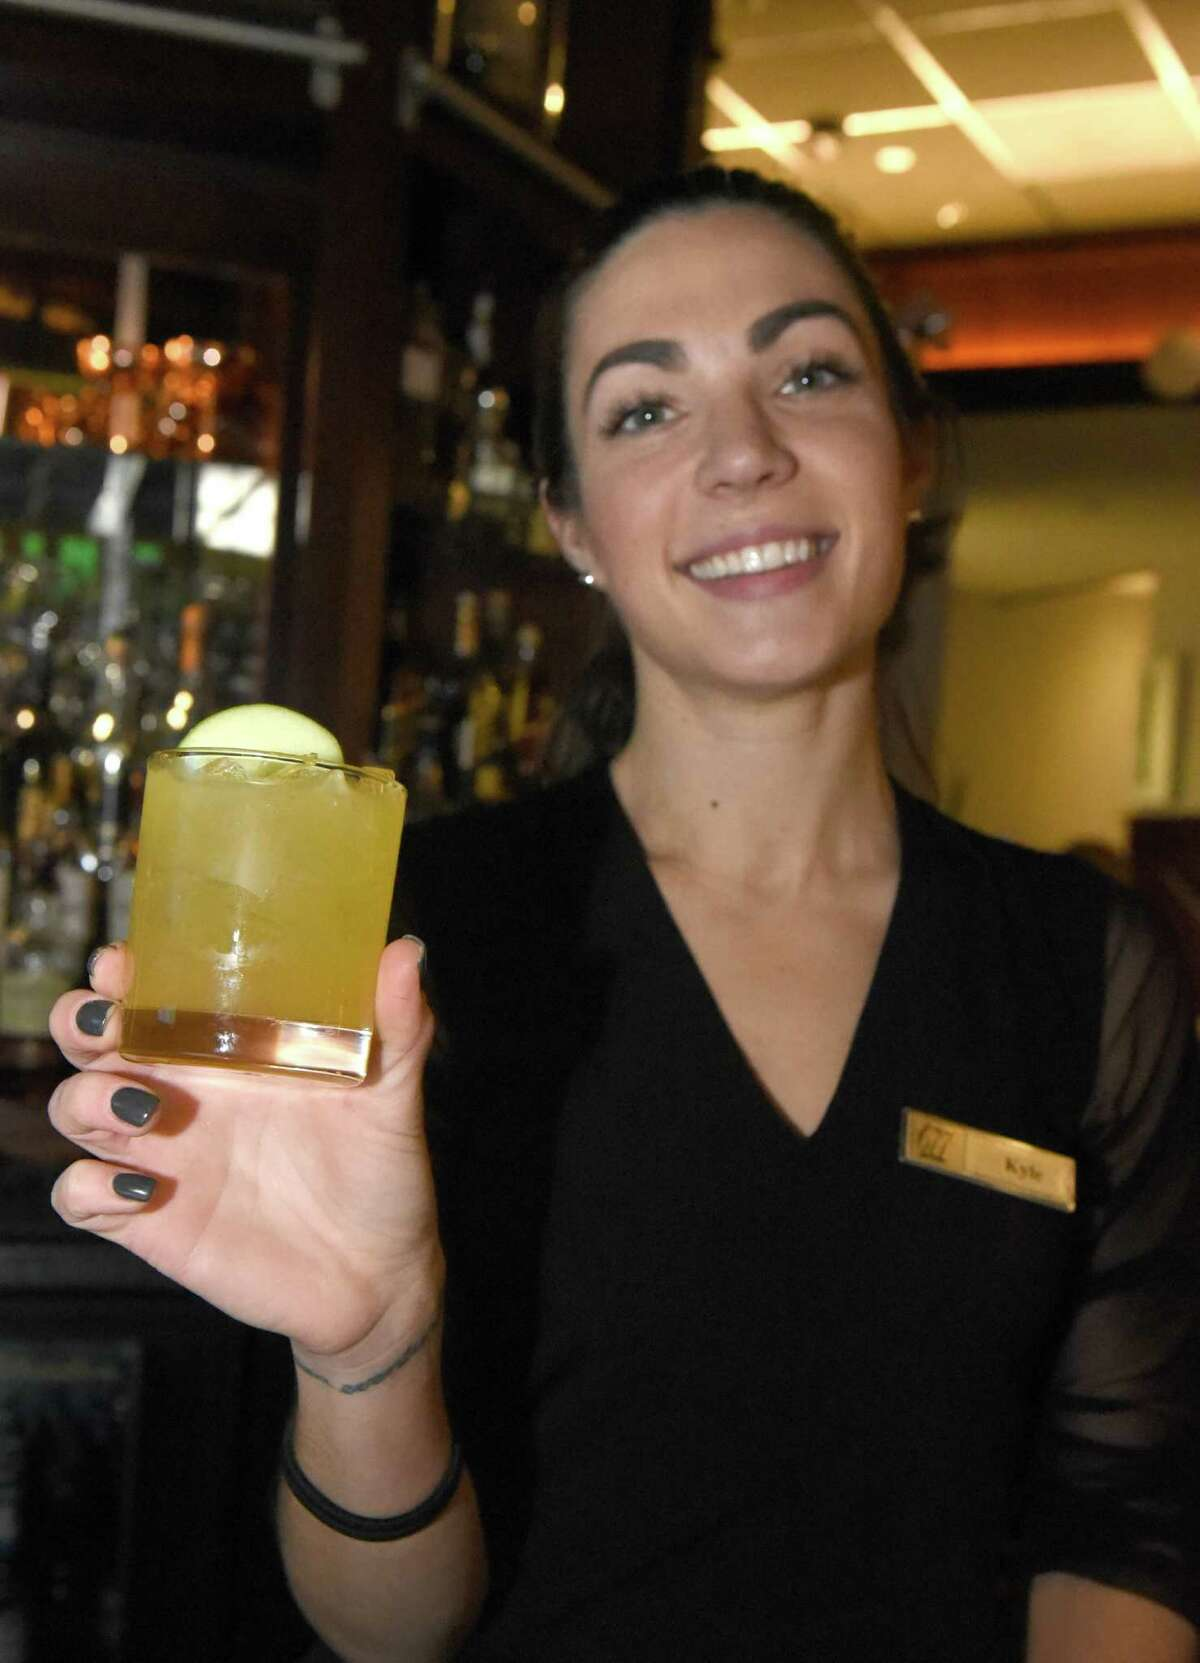 Bartender Kyle Cerutti with her President Martin Van Buren inspired cocktail at 677 Prime on Friday Dec. 23, 2016 in Albany N.Y. (Michael P. Farrell/Times Union)